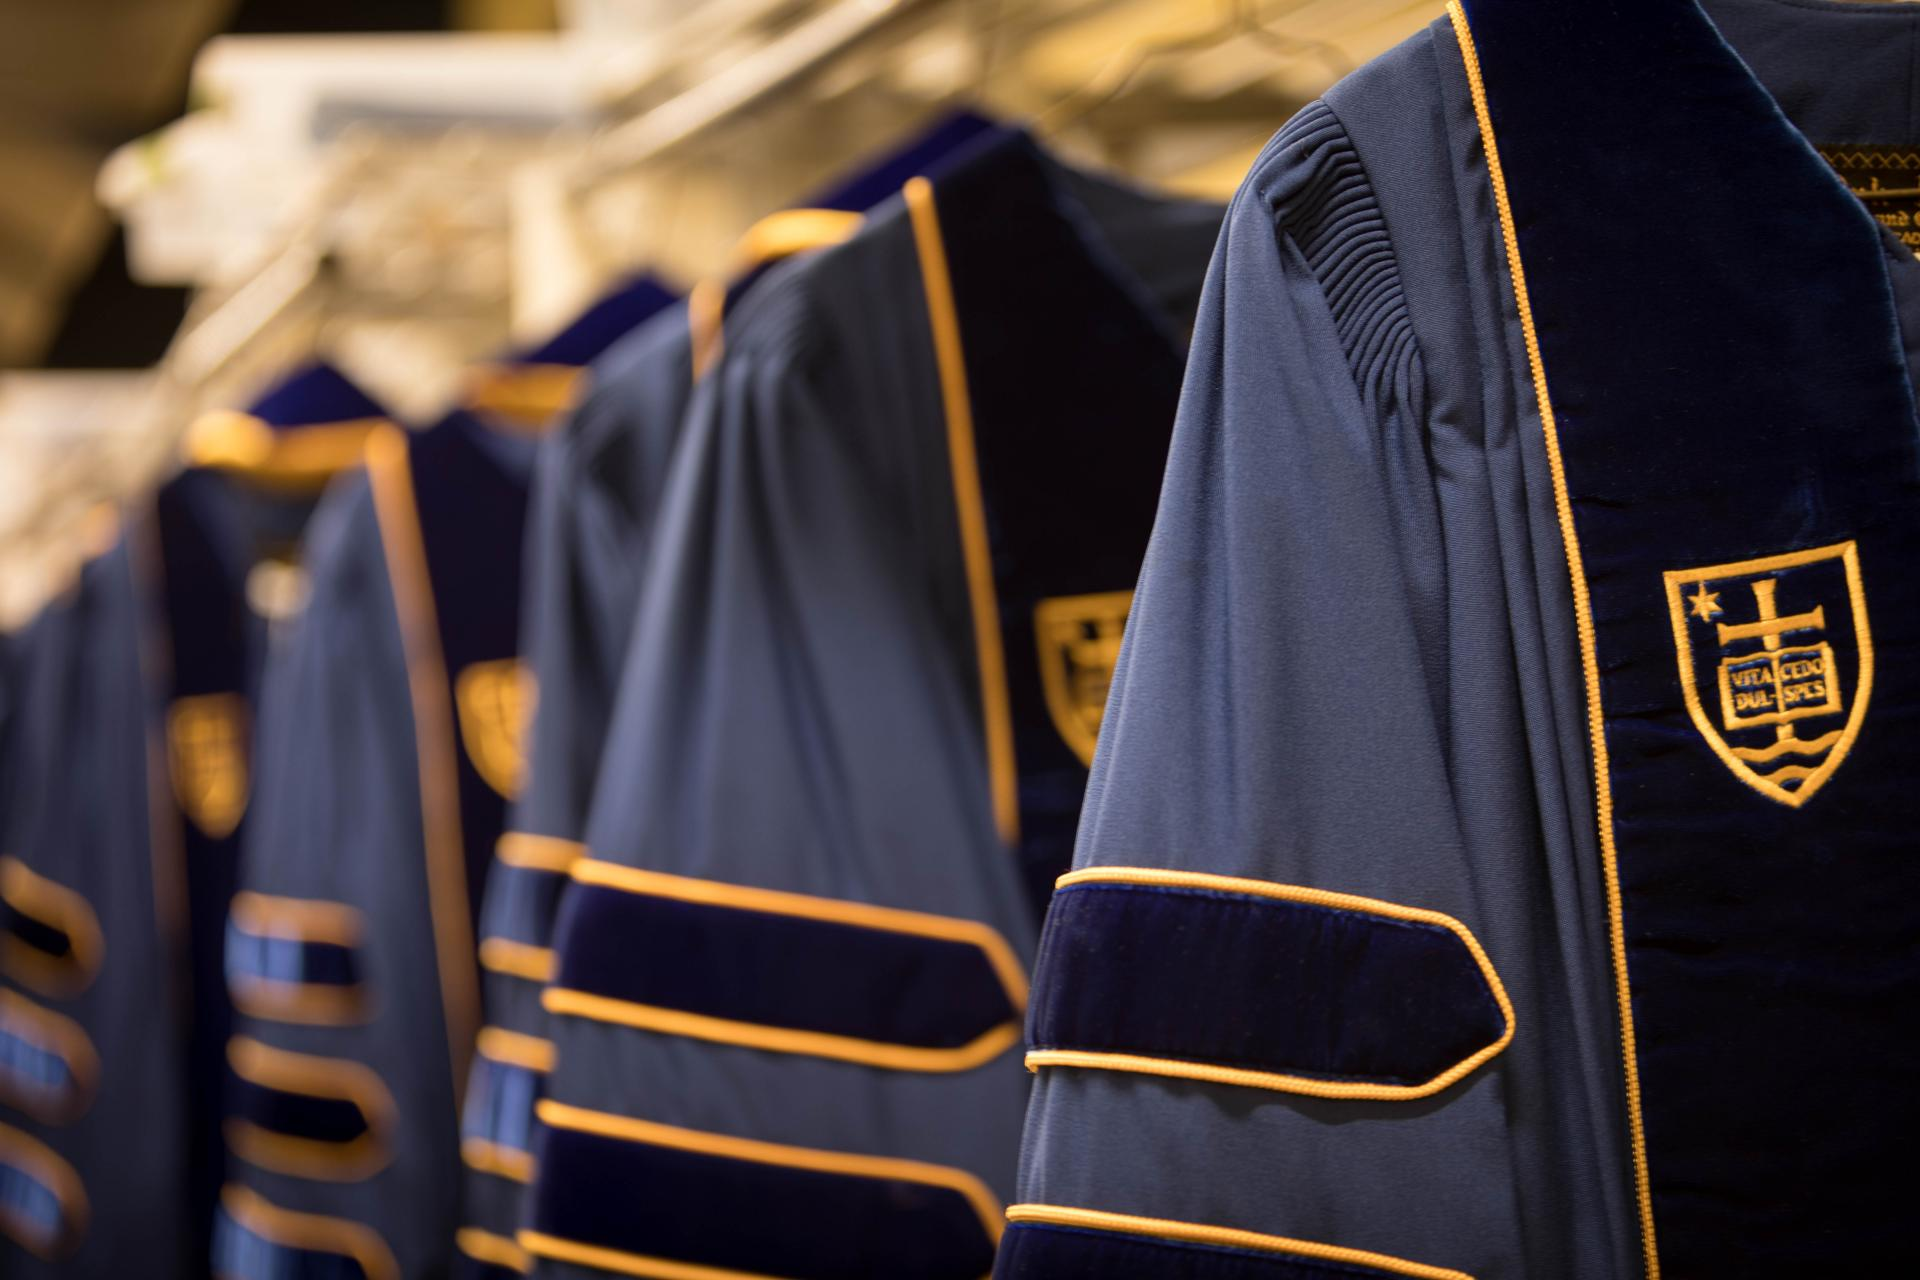 University of Notre Dame Commencement Robes